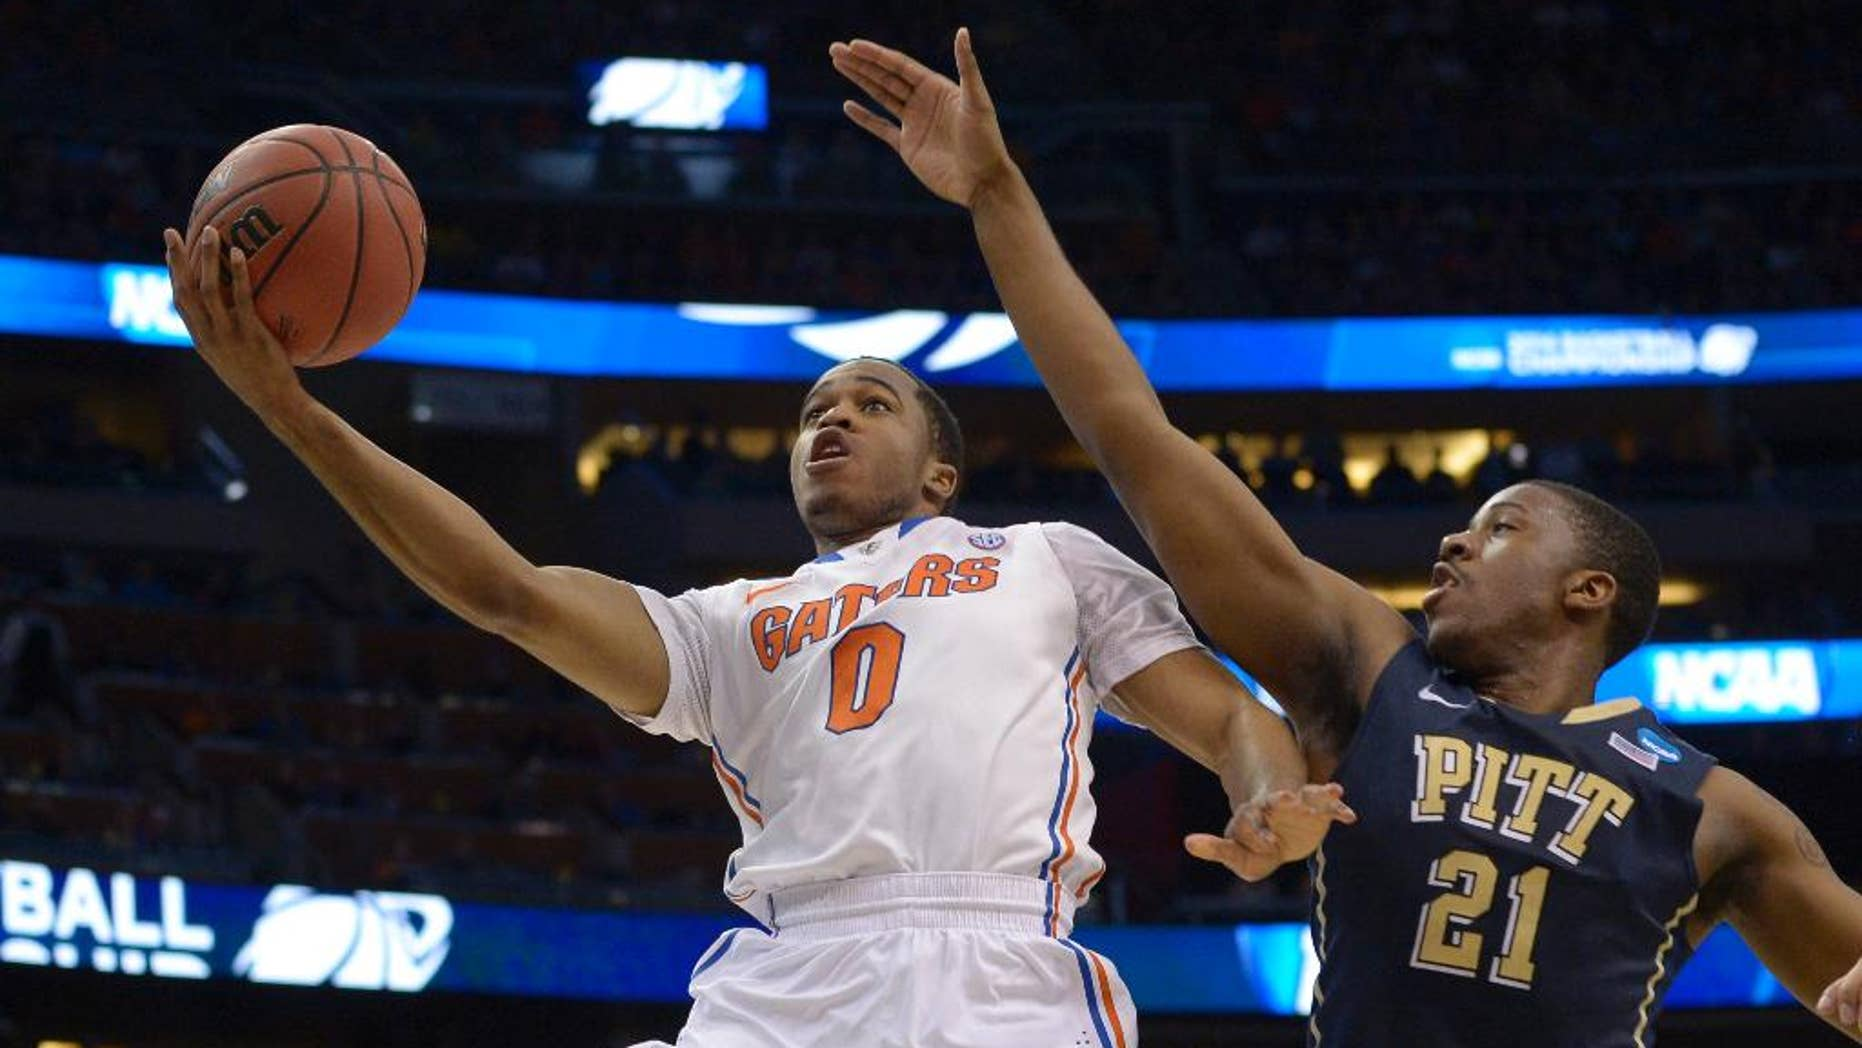 Florida guard Kasey Hill (0) drives to the basket as Pittsburgh forward Lamar Patterson (21) defends during the first half in a third-round game in the NCAA college basketball tournament  Saturday, March 22, 2014, in Orlando, Fla. (AP Photo/Phelan M. Ebenhack)